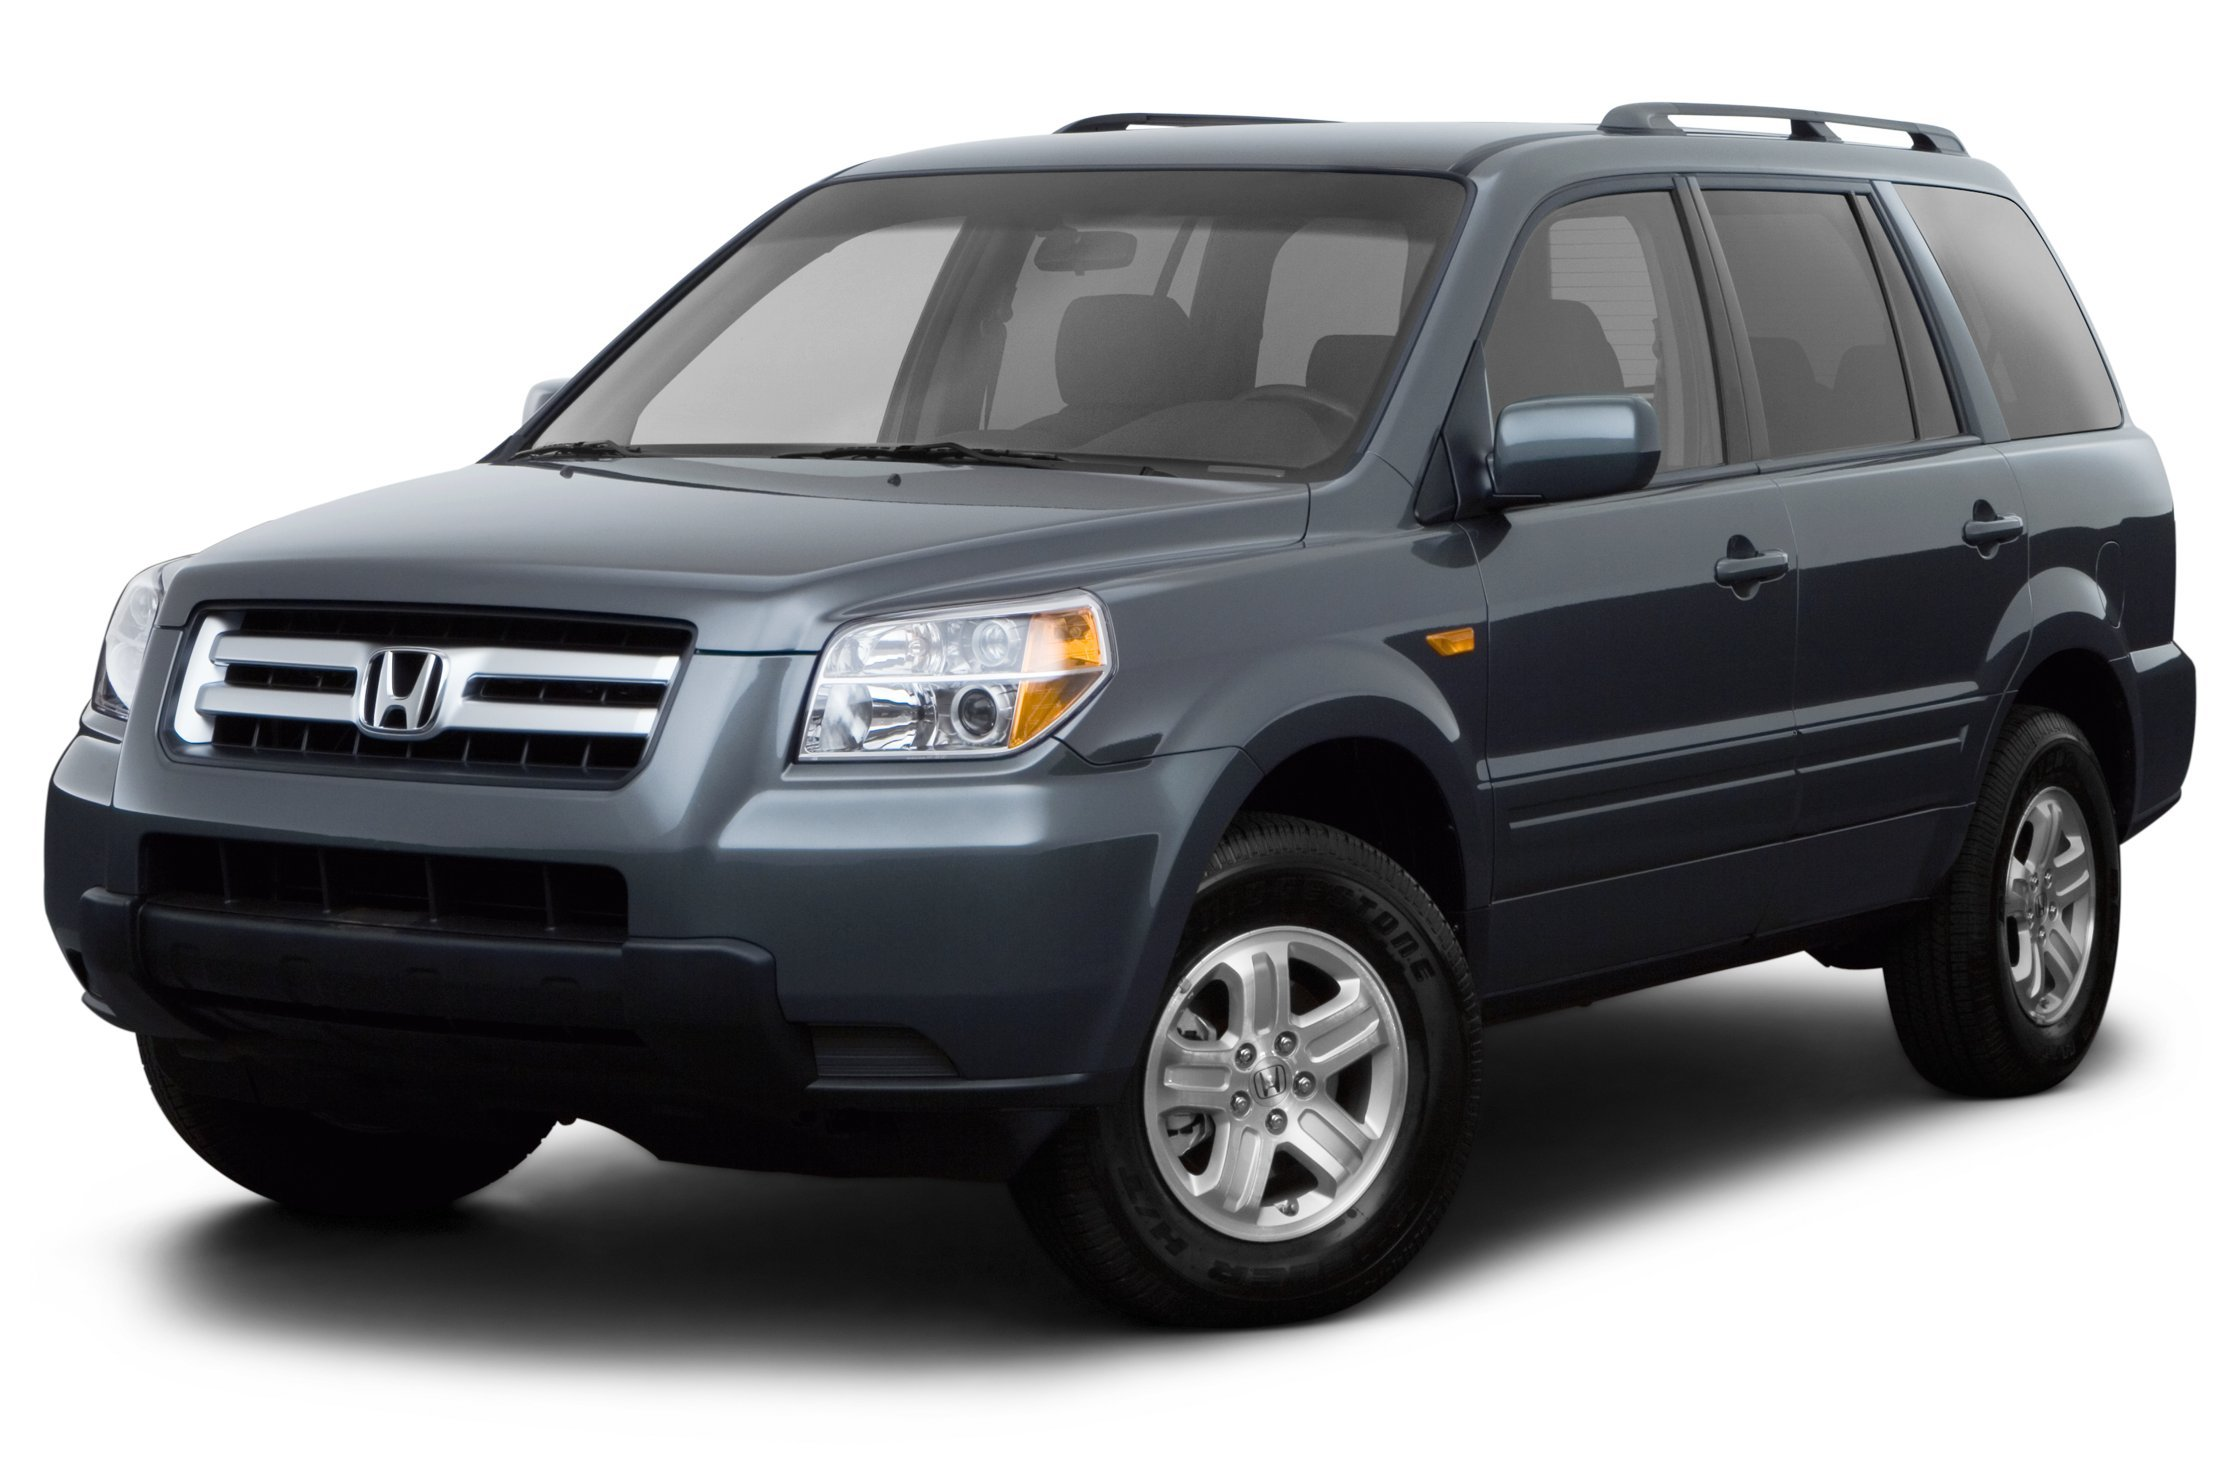 2008 honda pilot reviews images and specs for Honda pilot images